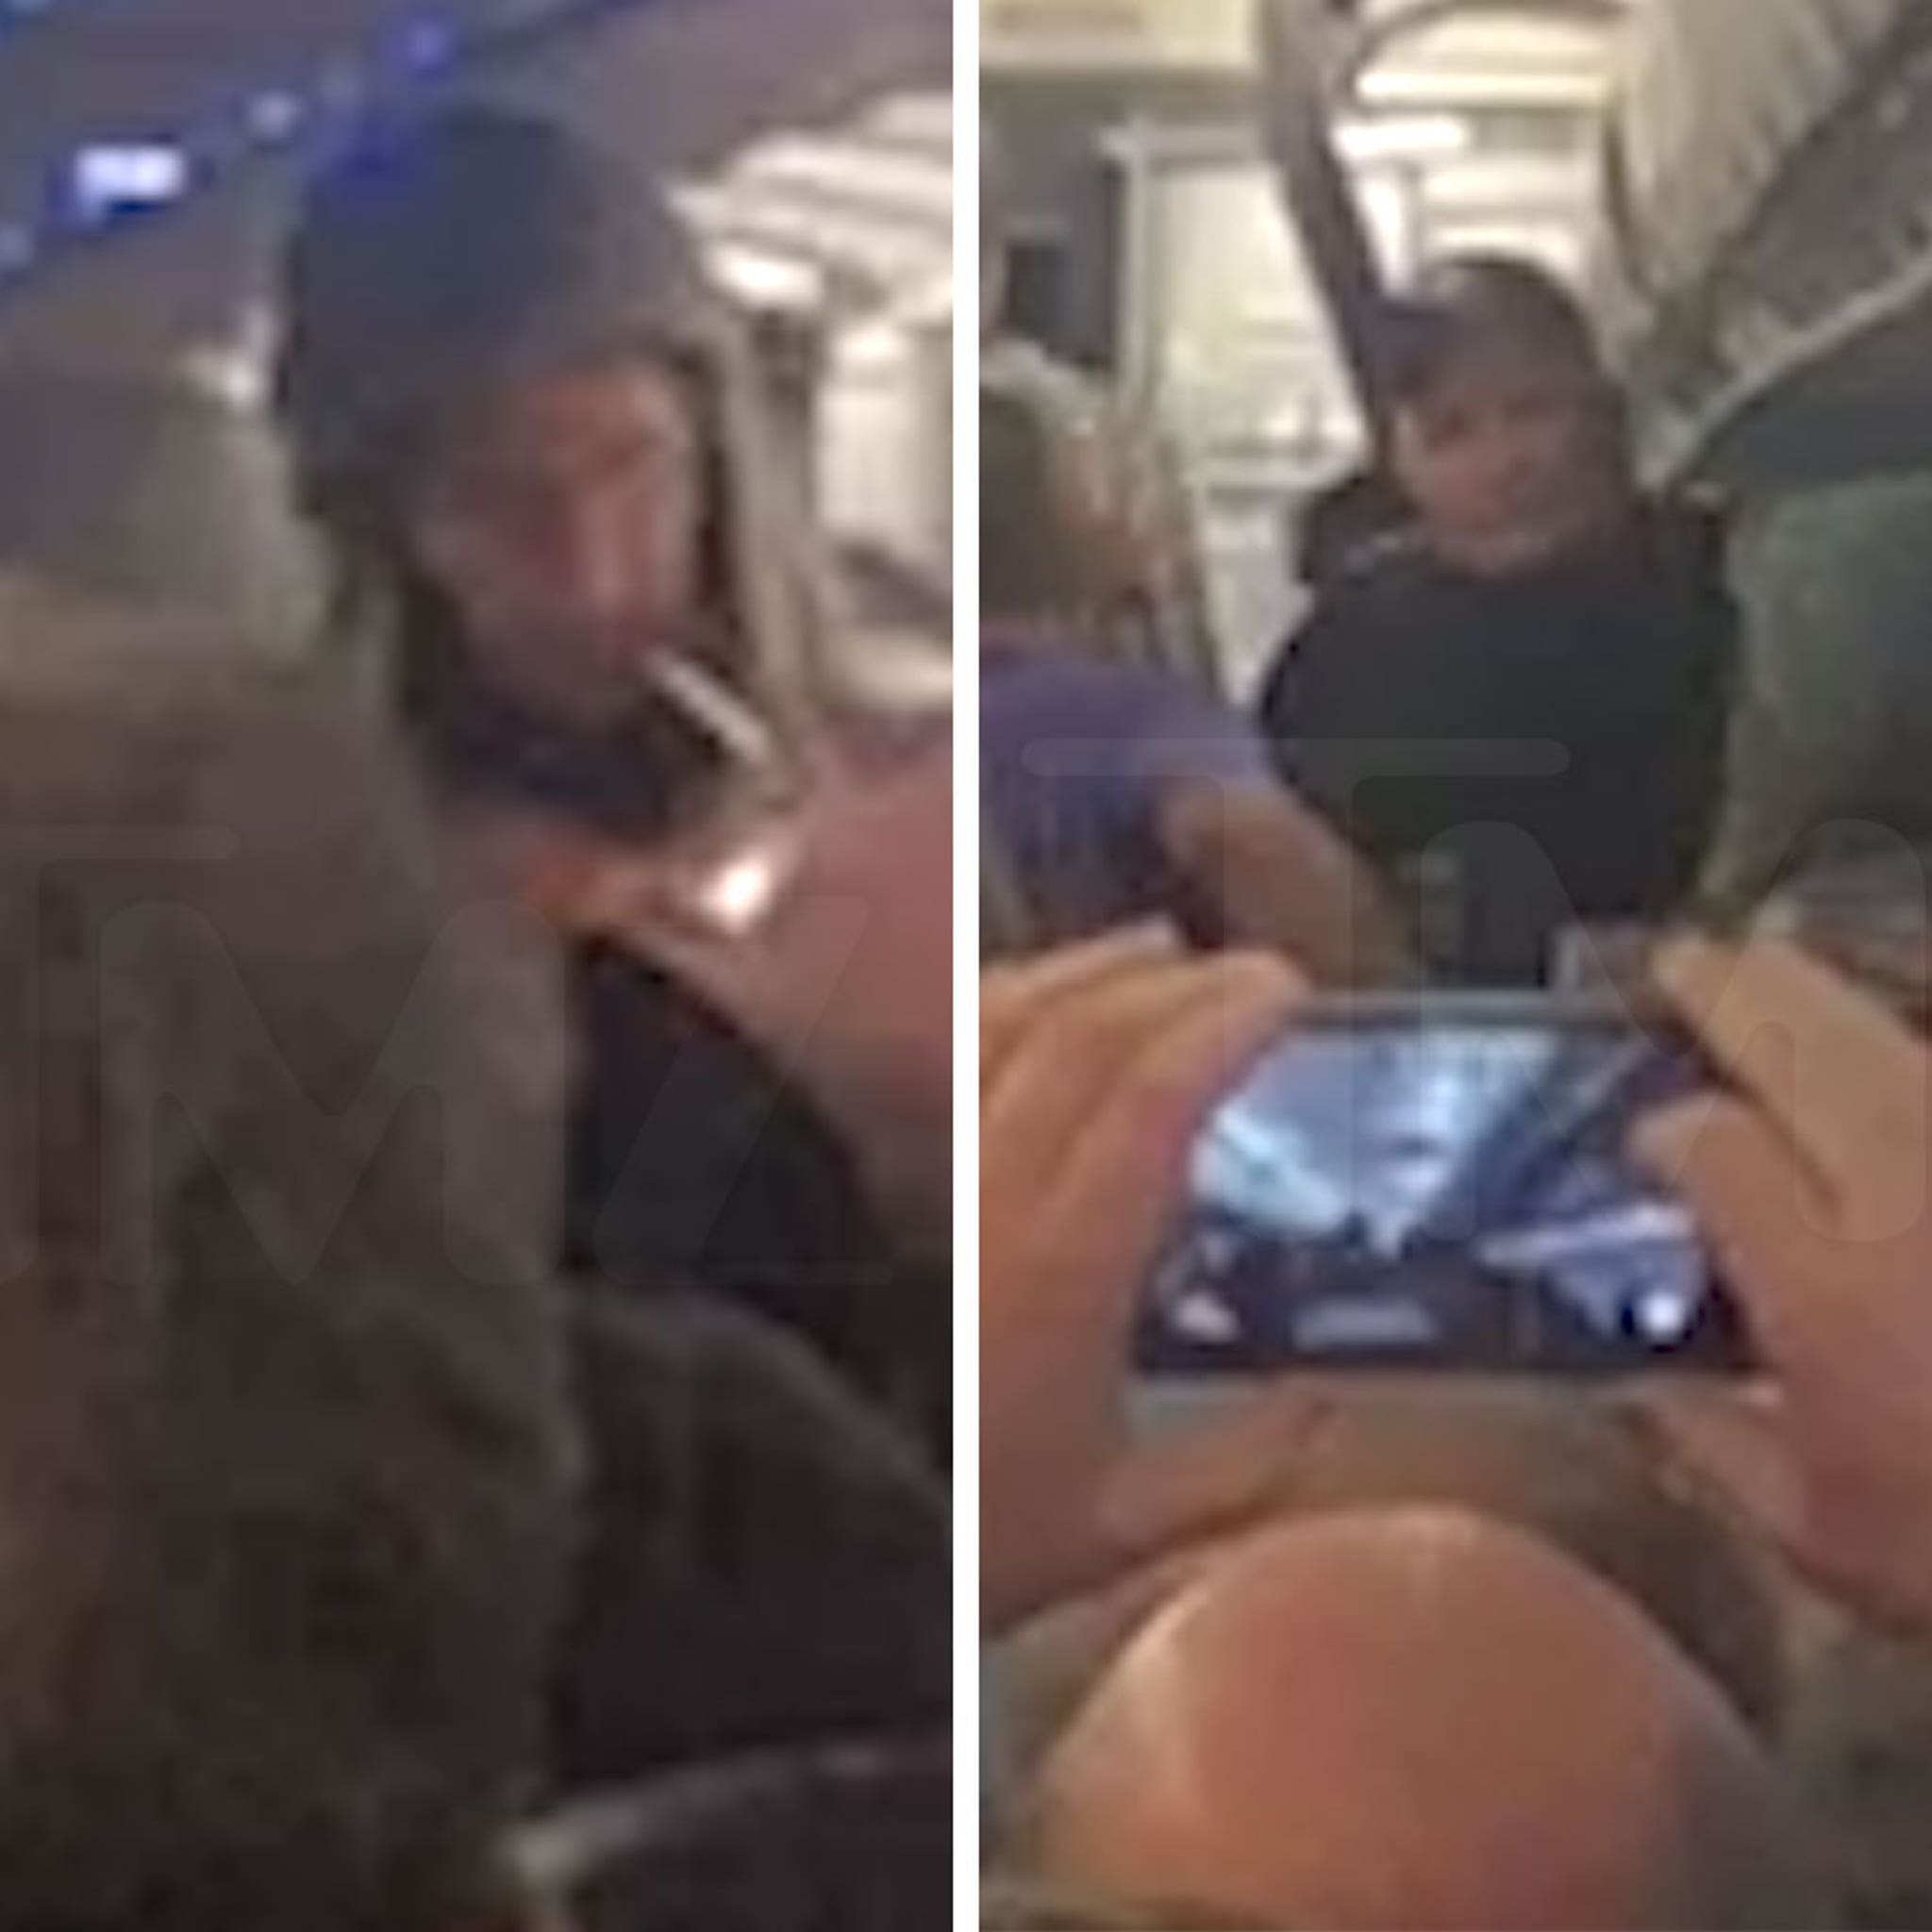 American Airlines Emergency Landing After Passenger Smokes Joint